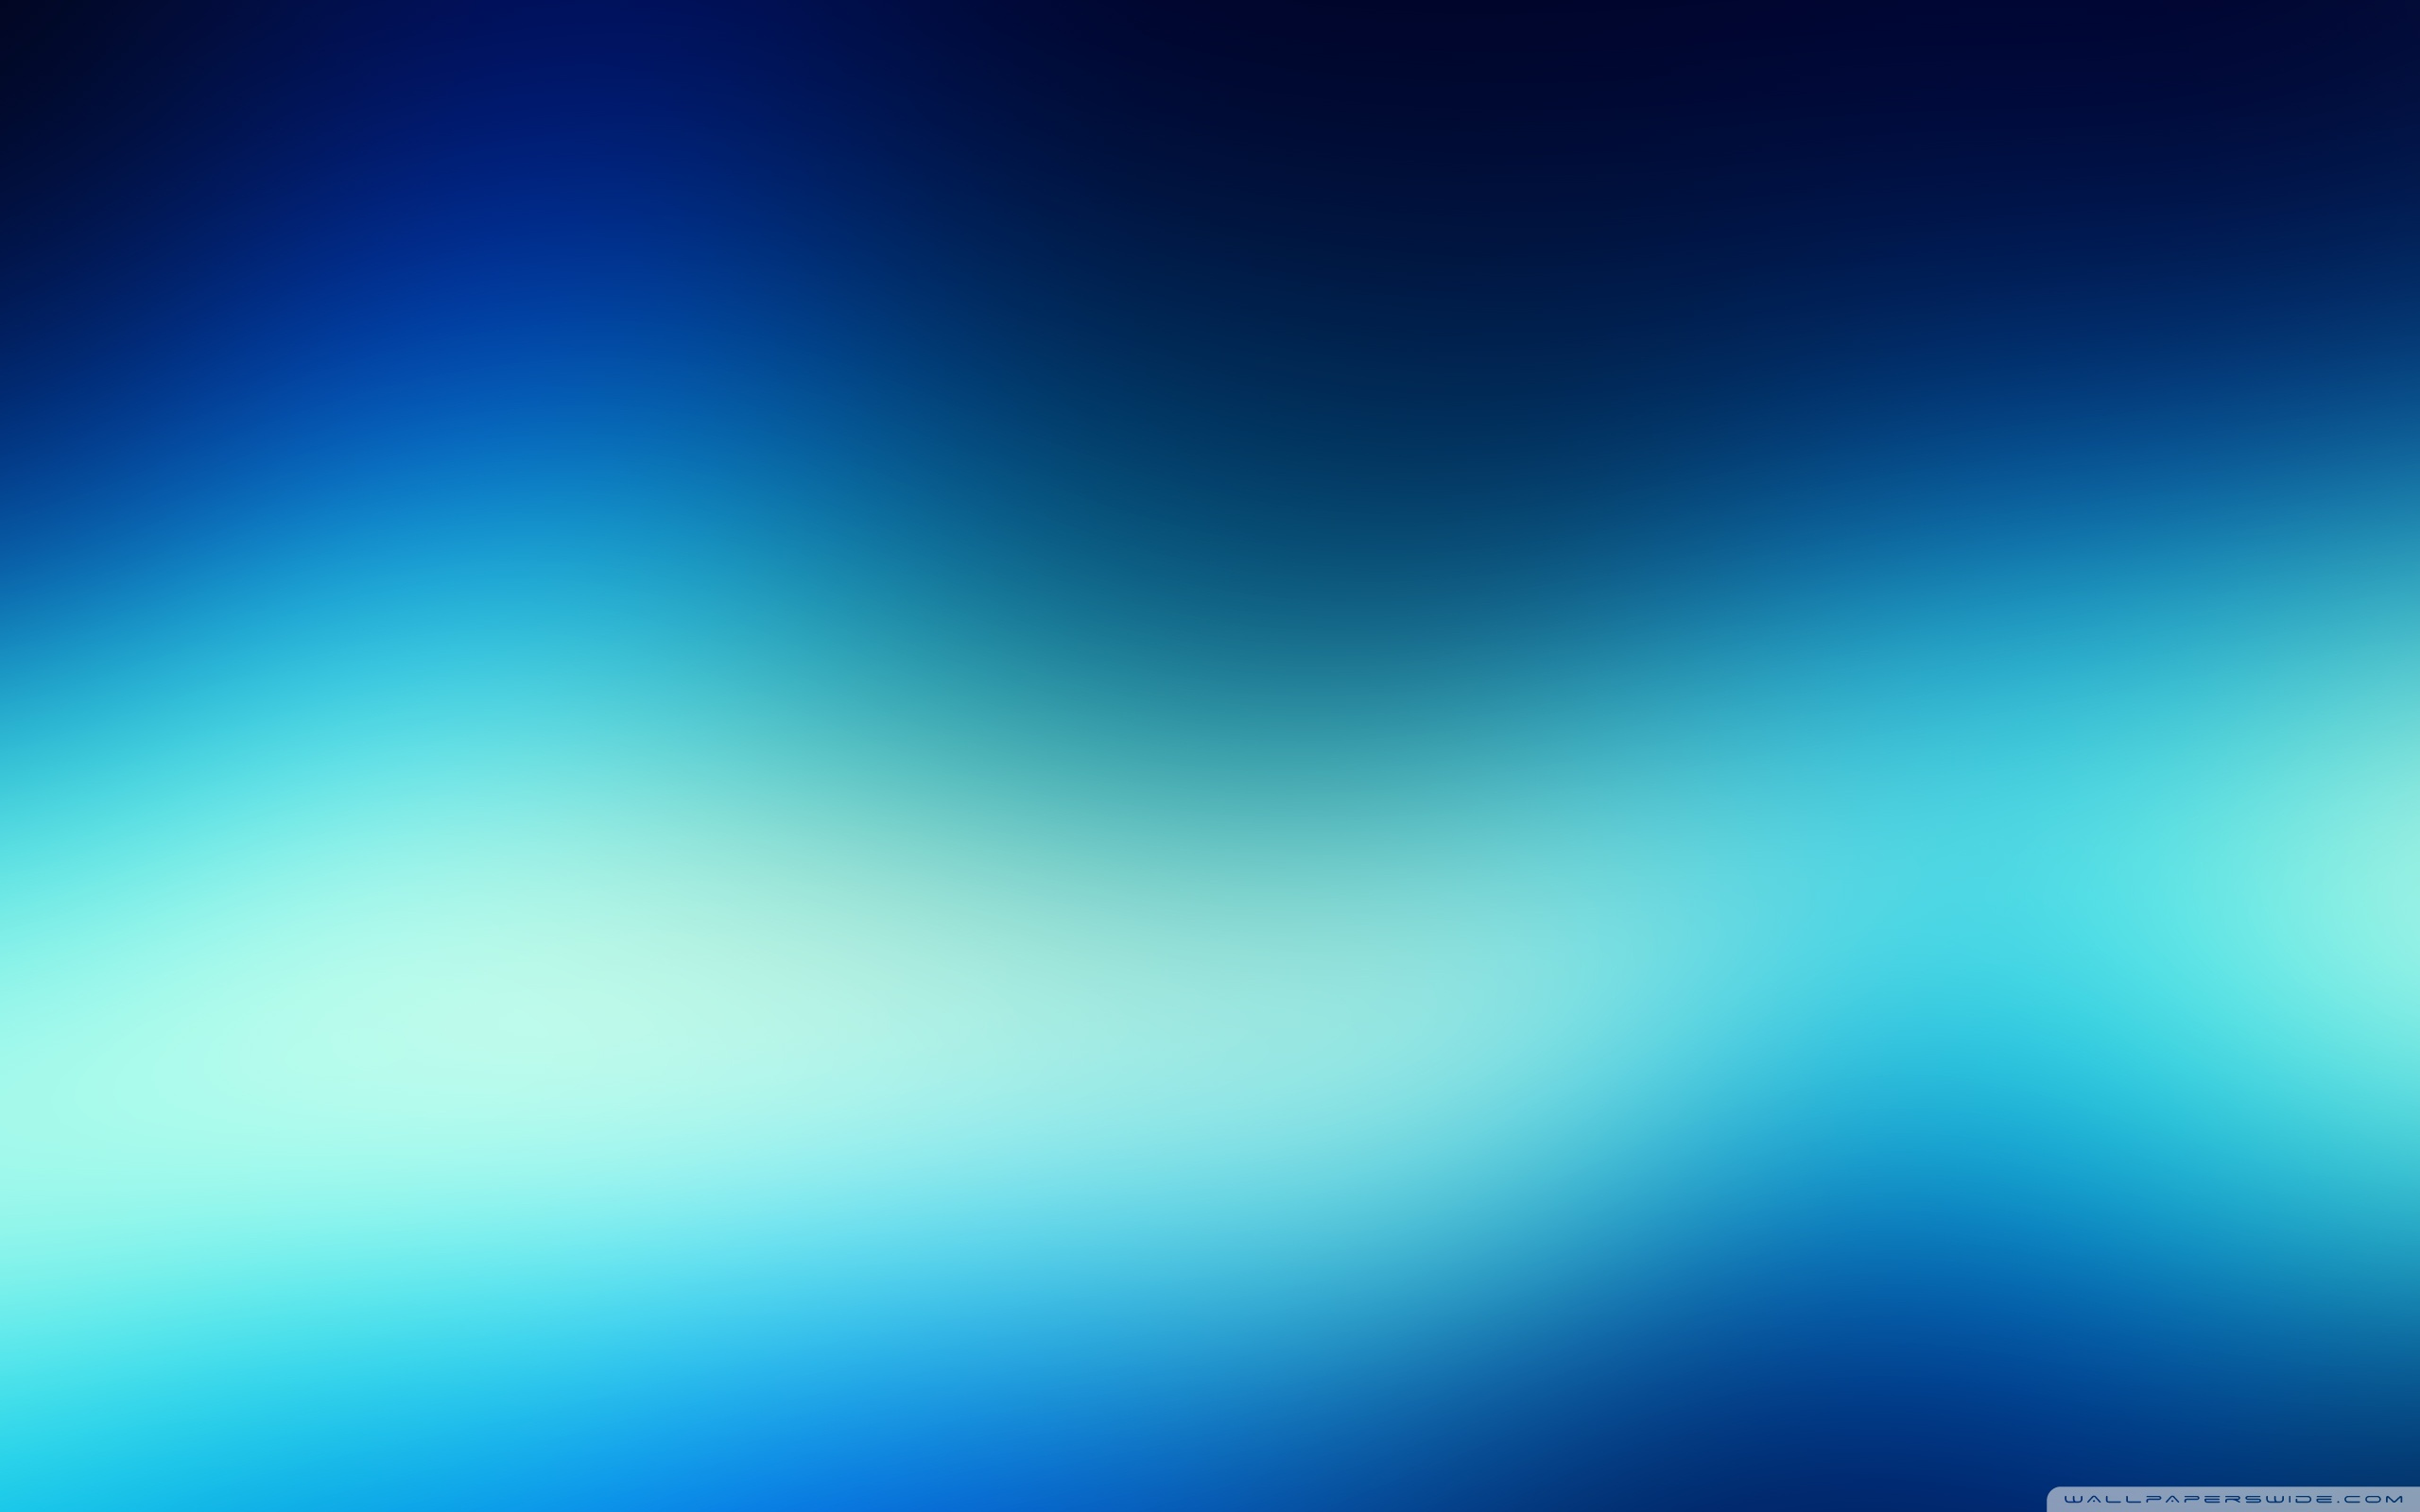 Blue Blurry Background Hd Desktop Wallpaper High Definition